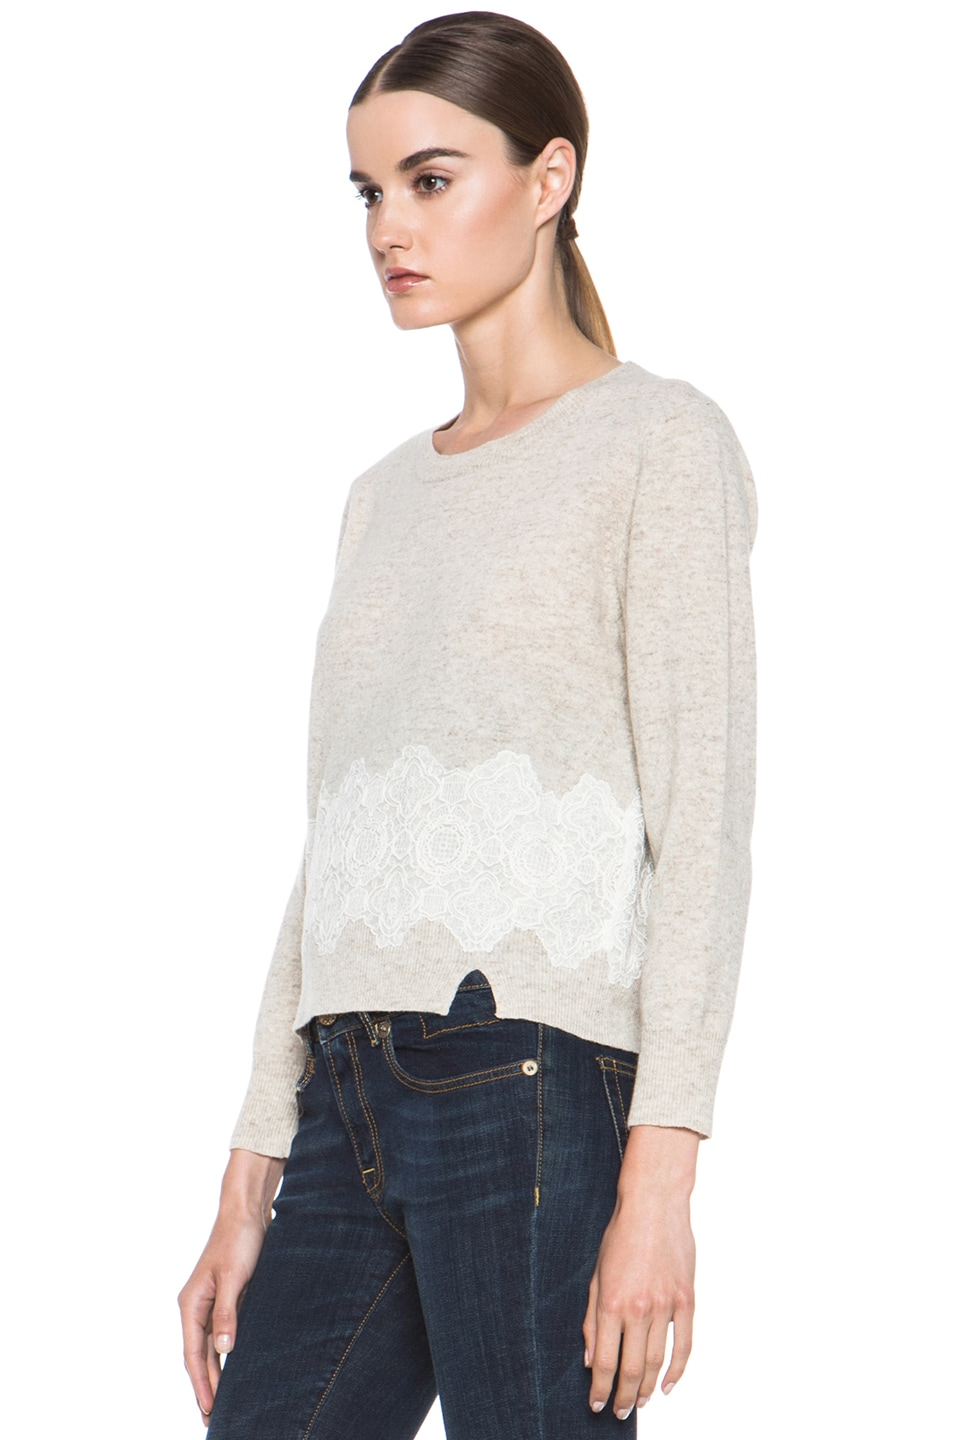 Image 2 of Girl. by Band of Outsiders Merino Wool Lace Pullover in Oatmeal